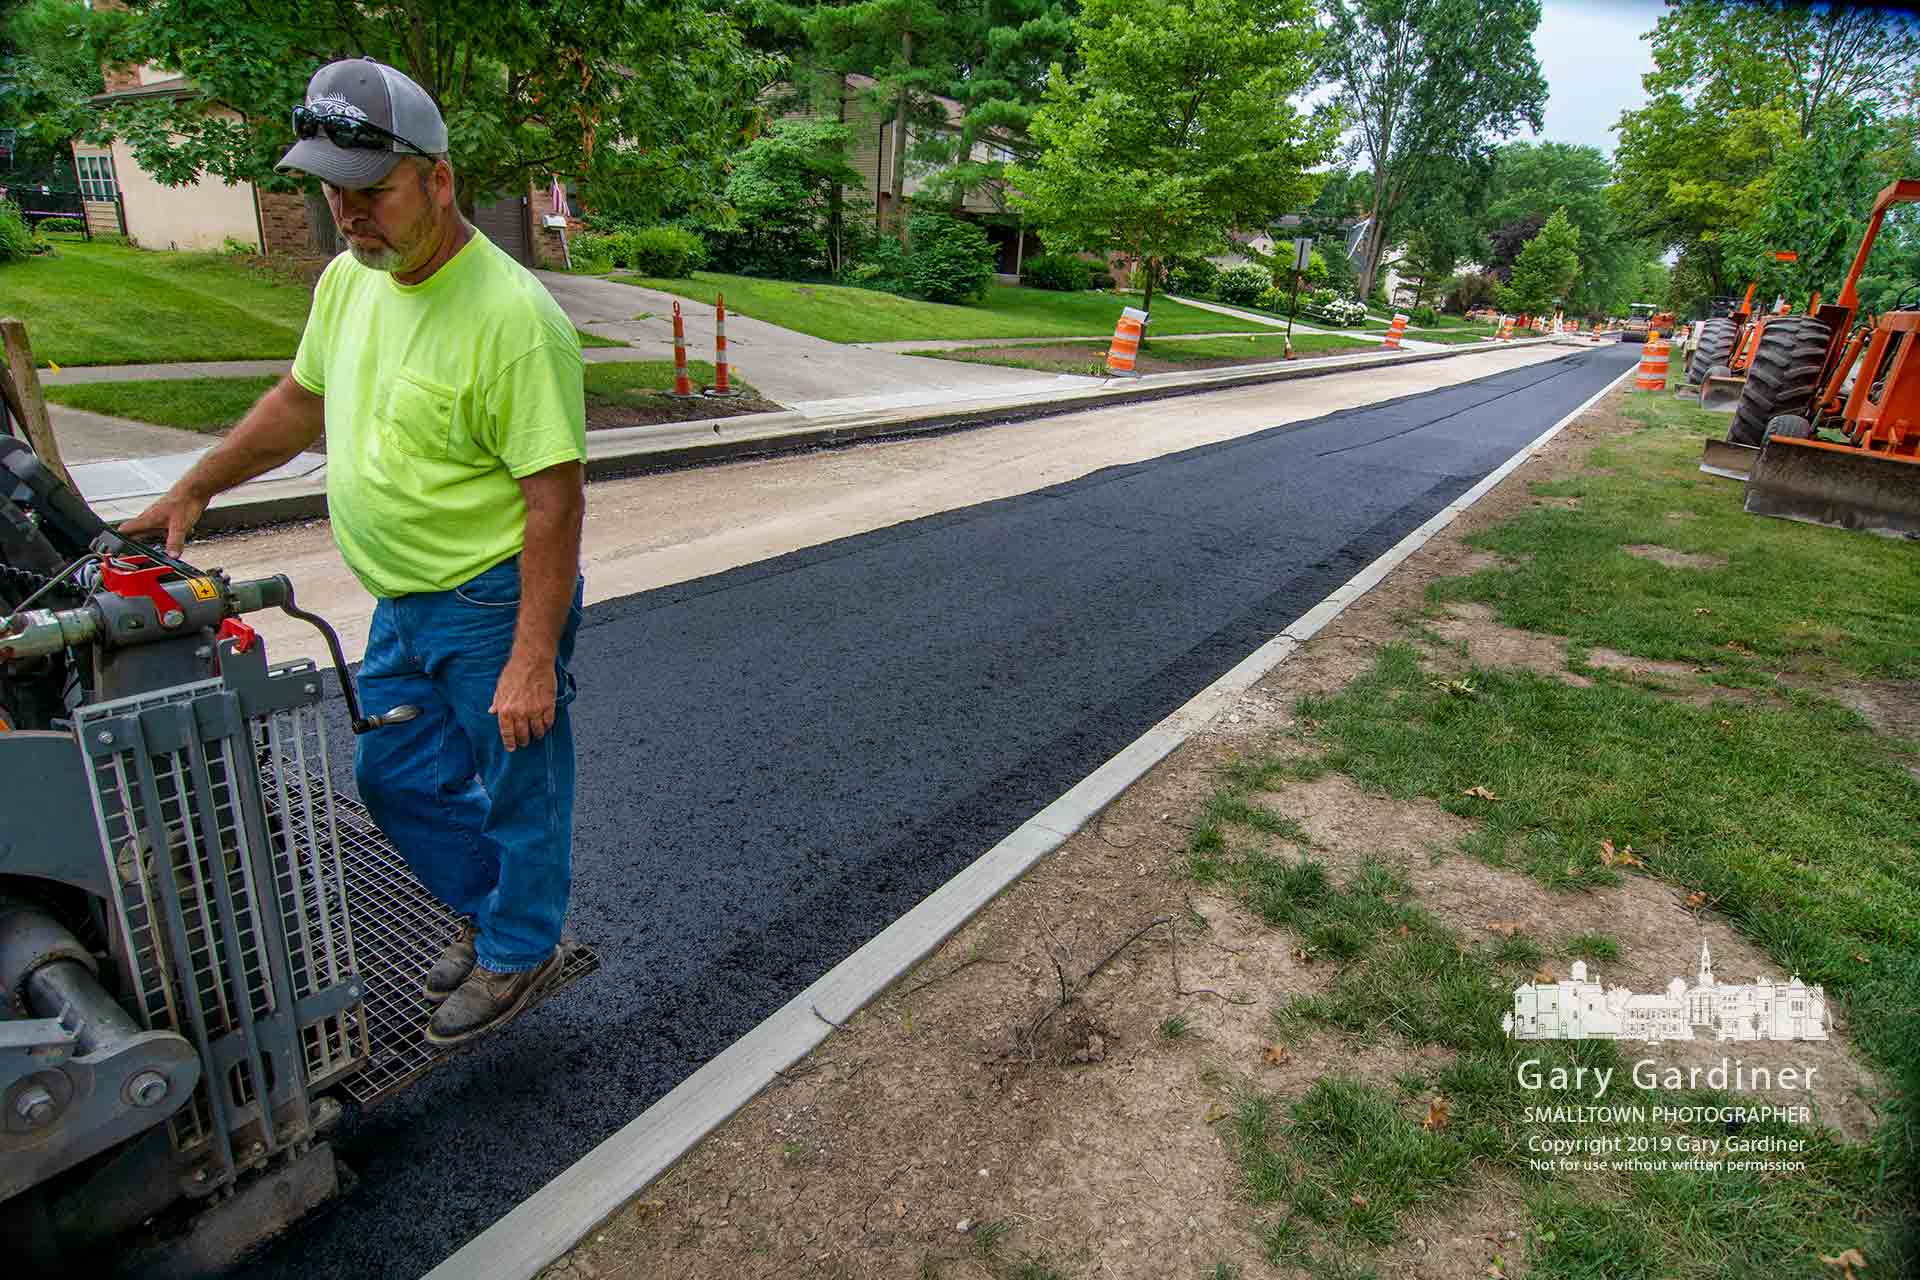 A crew lays the first layer of asphalt on a northbound section of Spring Road after replacing the curbing and gutters and removing the old road surface. My Final Photo for June 27, 2019.